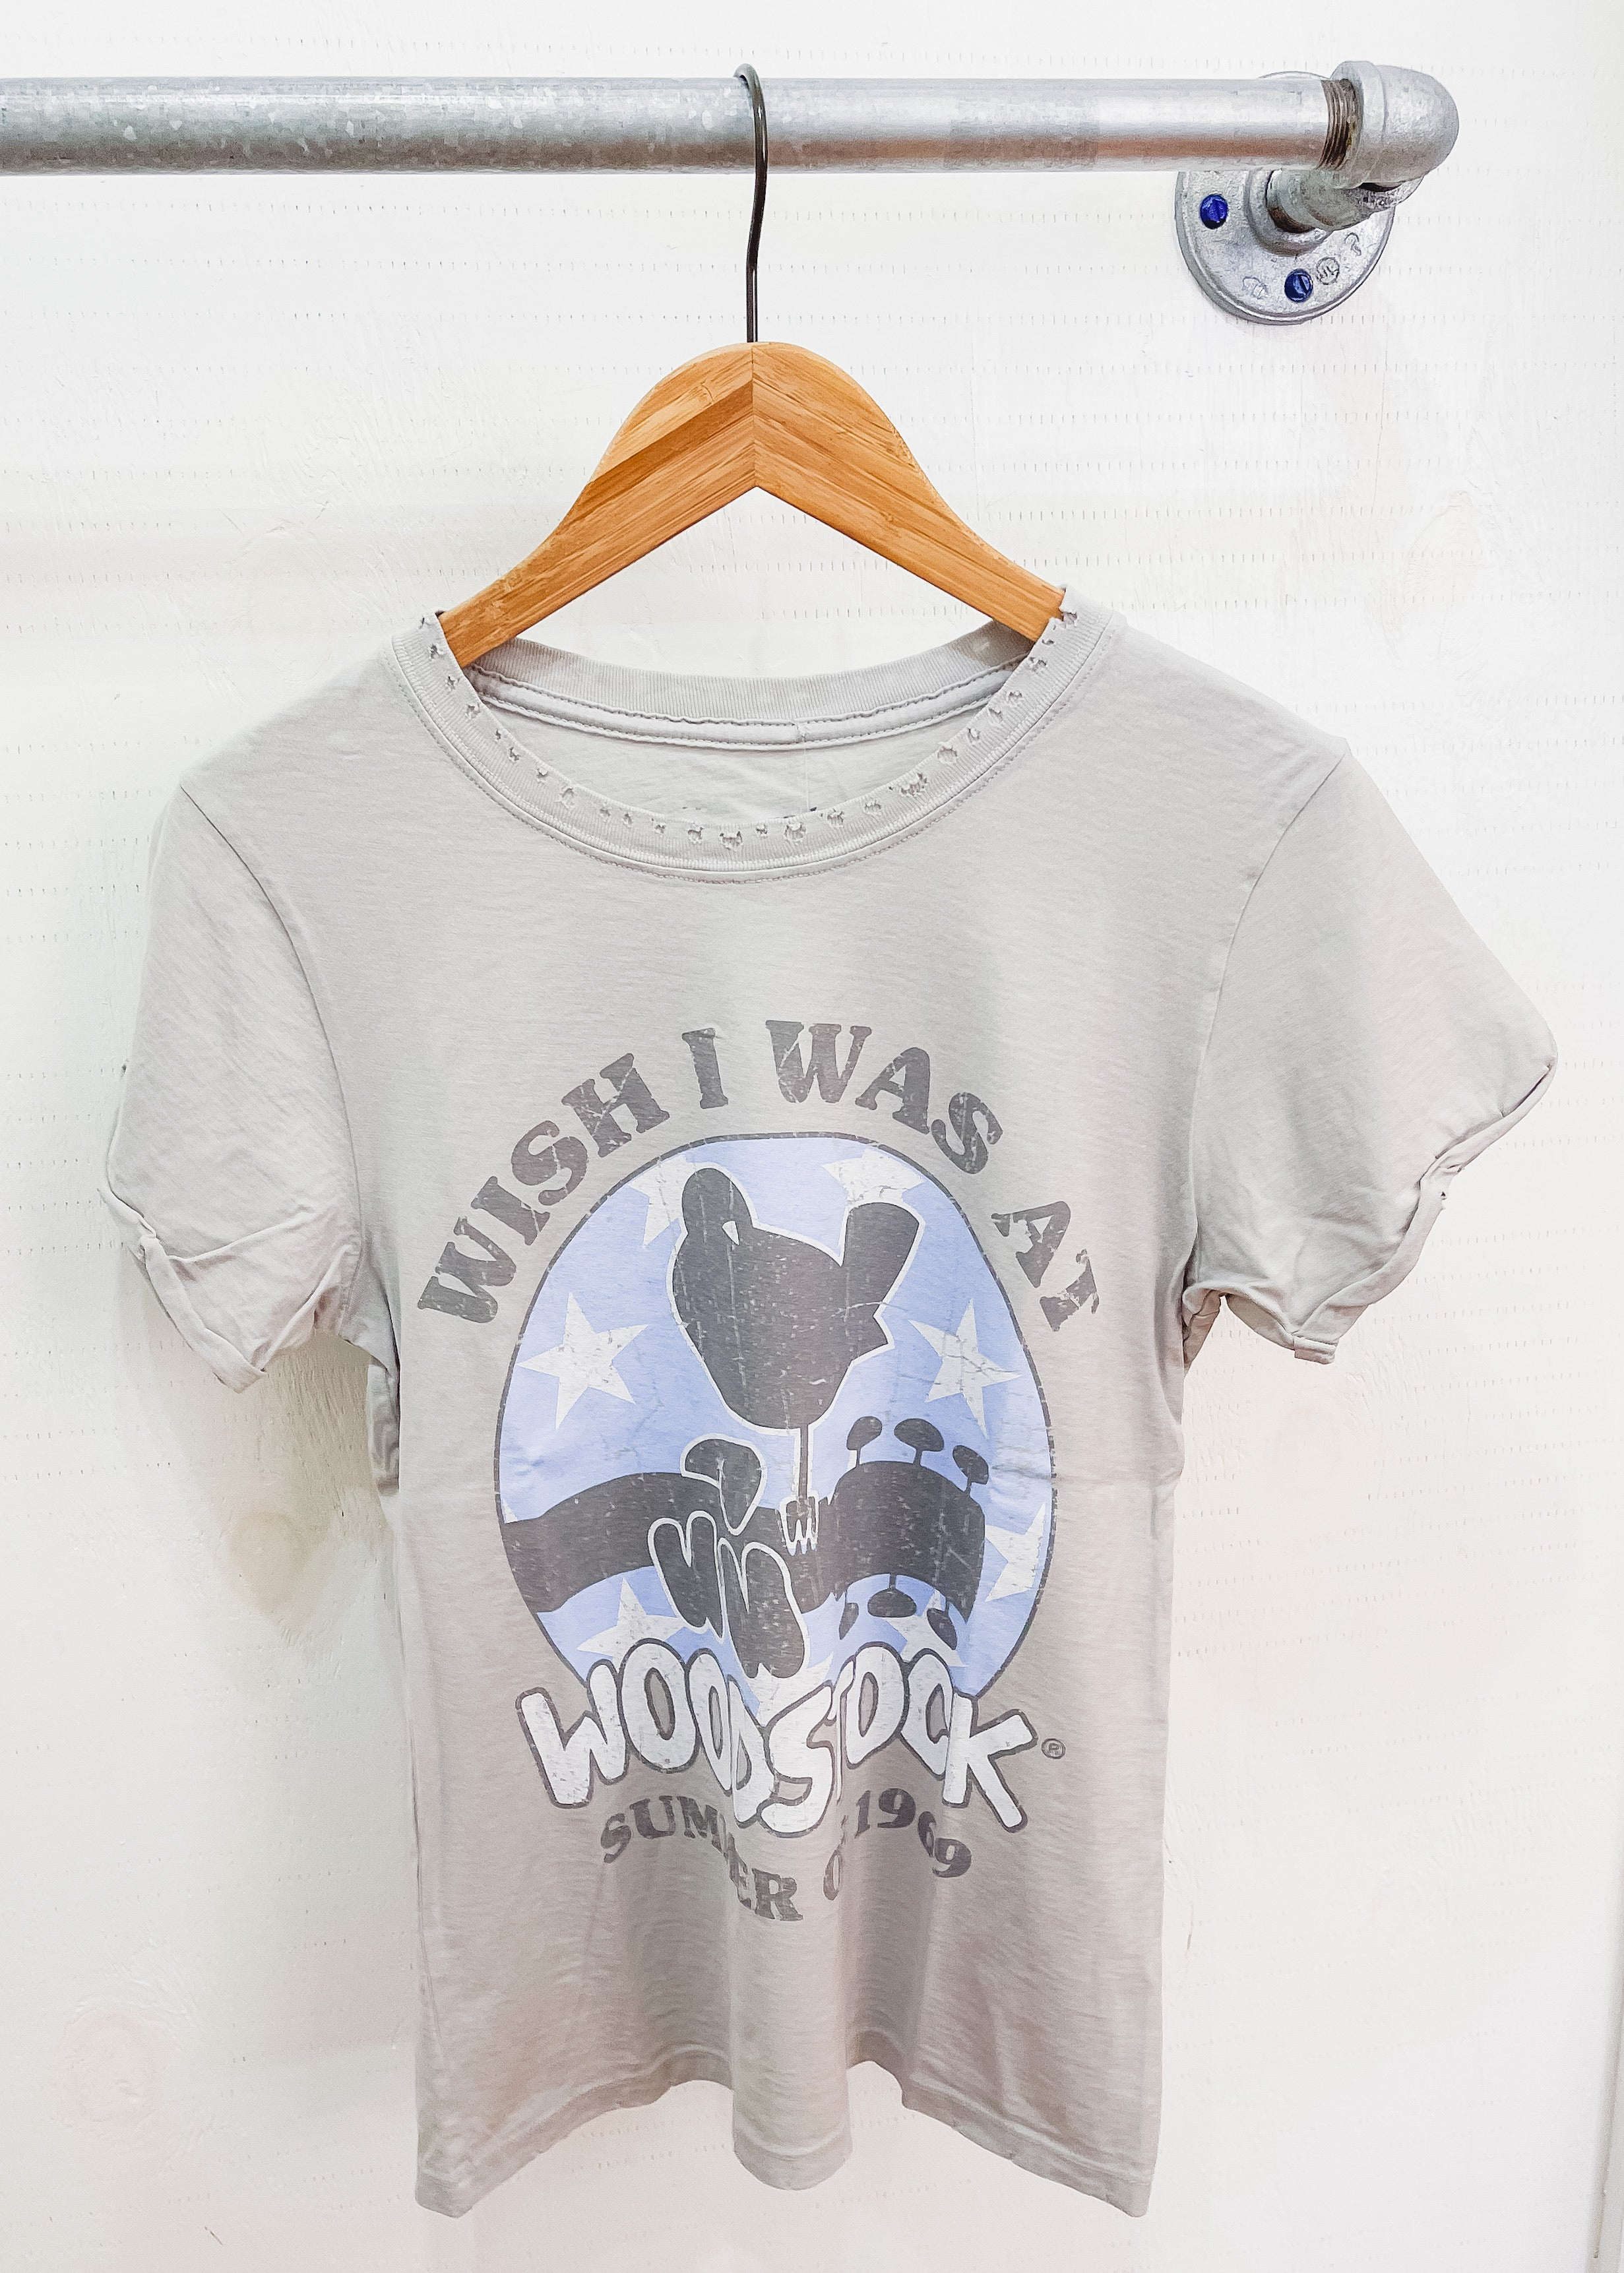 Wish I Was At Woodstock Tee